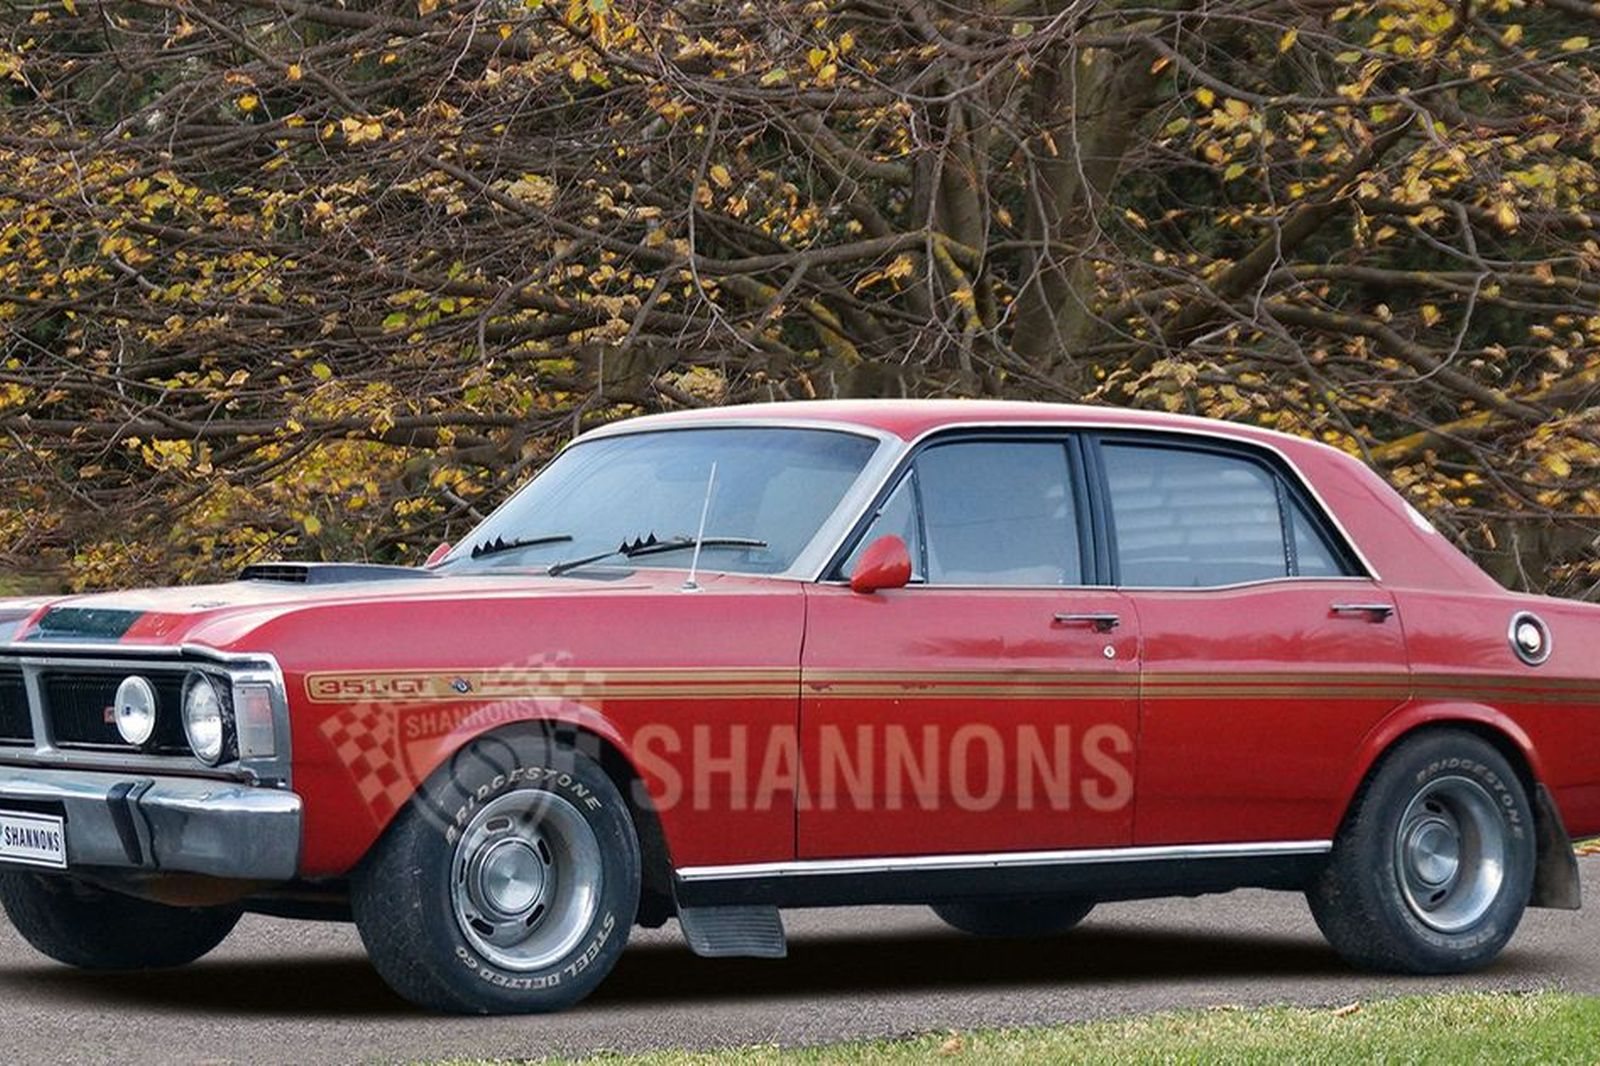 66c43d80 Sold: Ford Falcon XY V8 Sedan (Barn find) Auctions - Lot 43 - Shannons